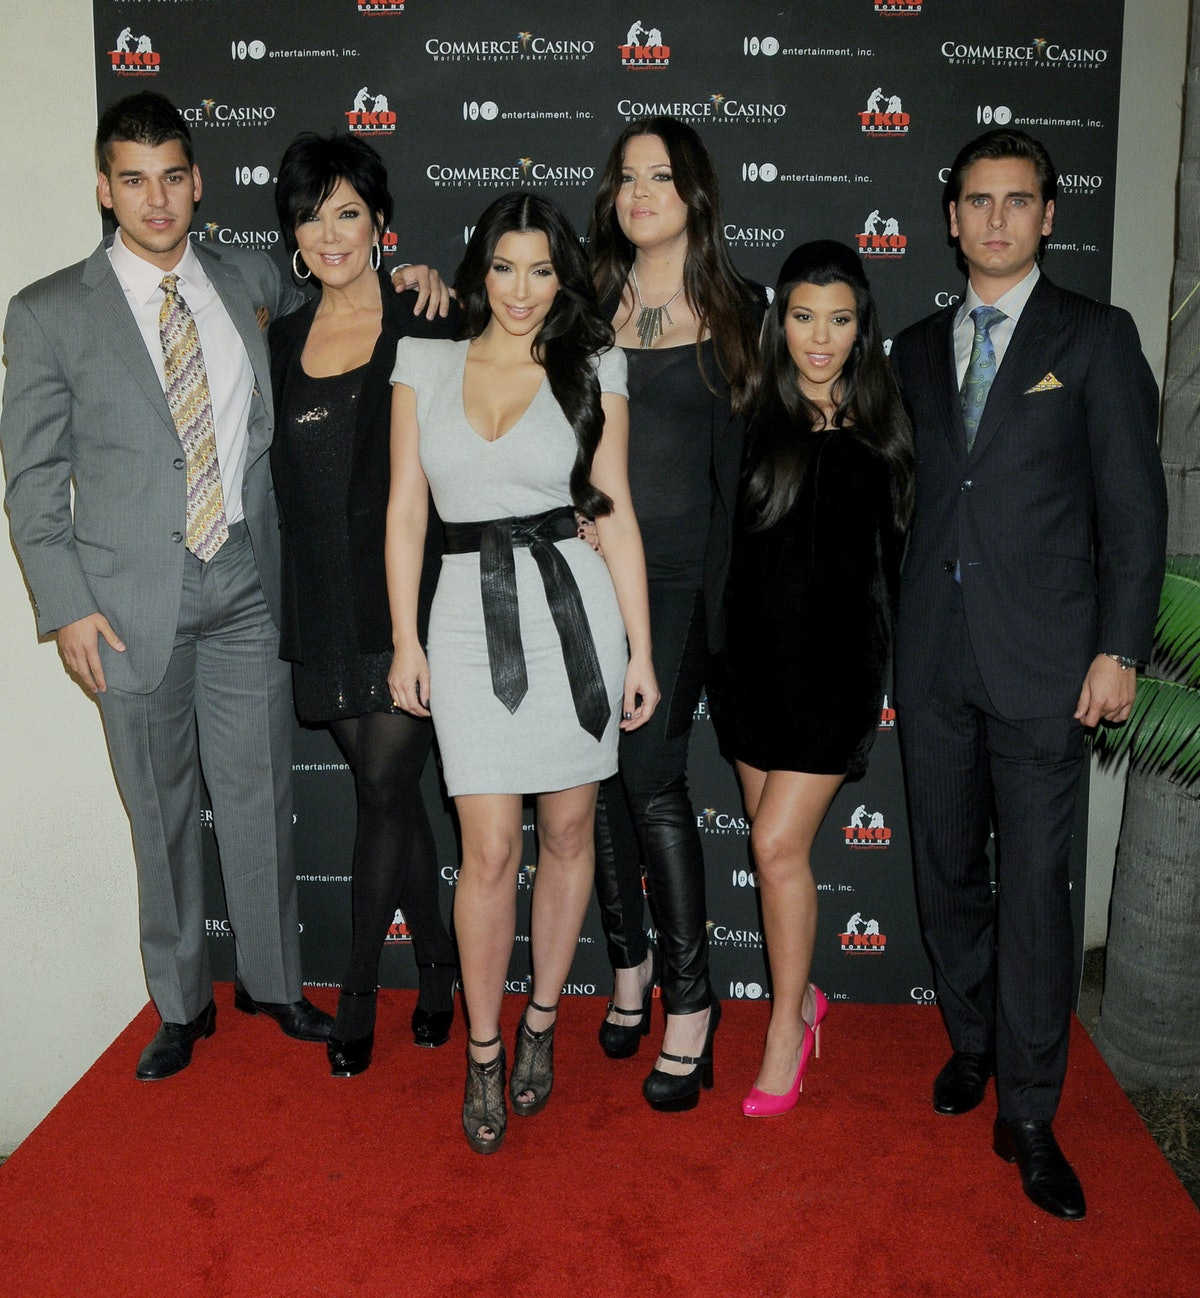 """COMMERCE, CA - NOVEMBER 3: Rob Kardashian, Kris Jenner, Kim Kardashian, Khloe Kardashian, Kourtney Kardashian and Scott Disick arrive at the """"Kardashian Charity Knock Out"""" at the Commerce Casino on November 3, 2009 in Commerce, California.  (Photo by Gregg DeGuire/FilmMagic)"""